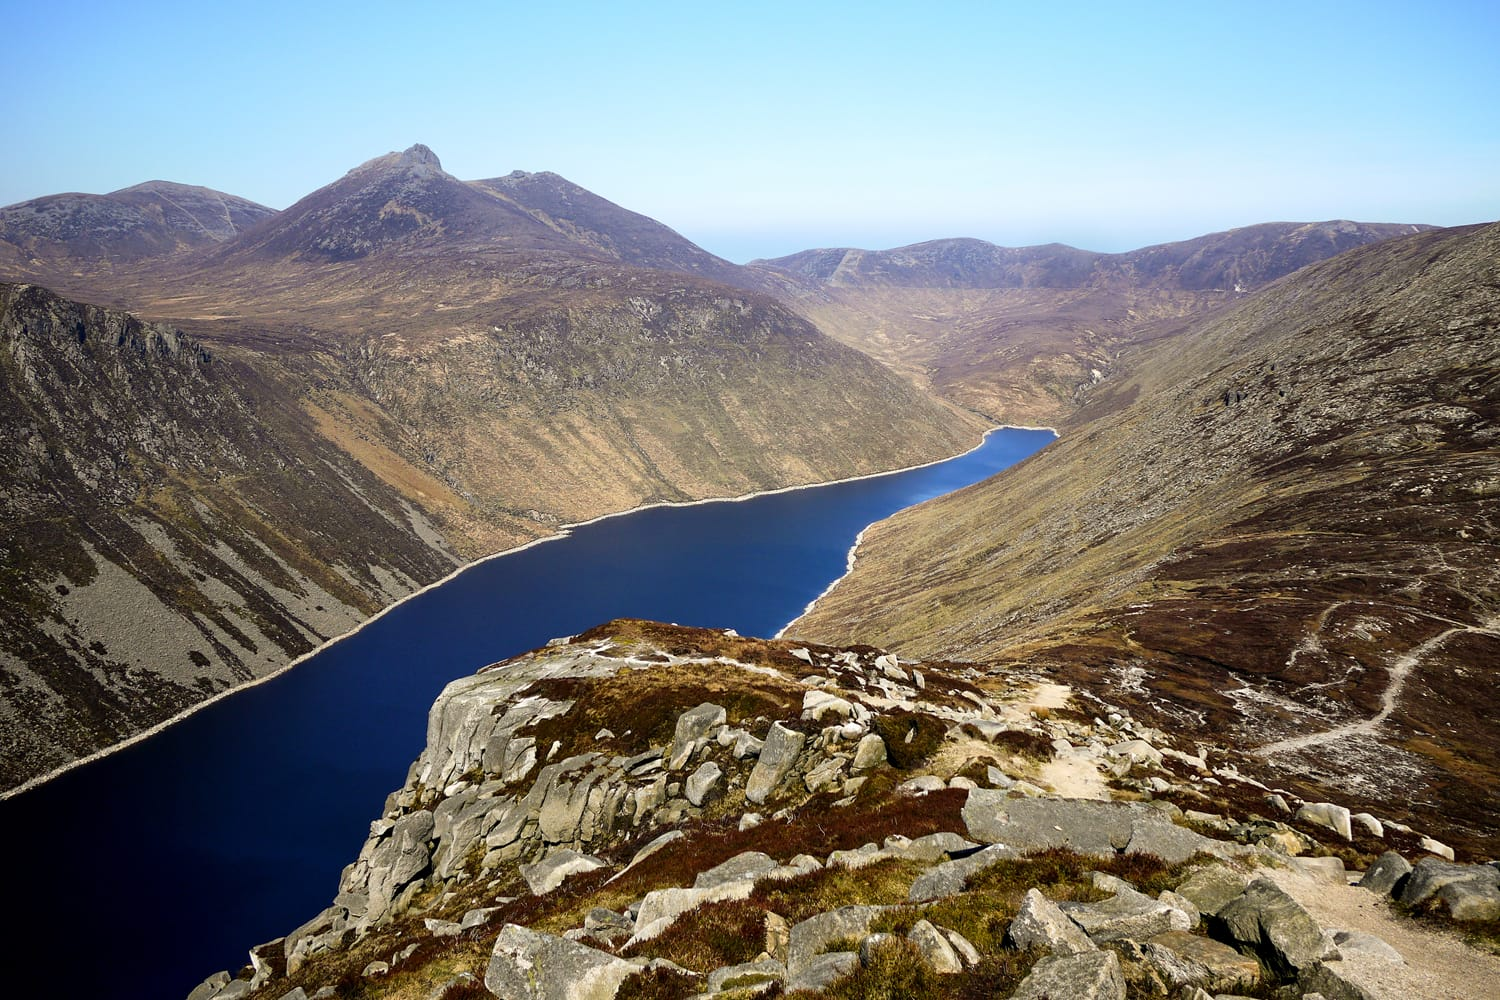 Ben Crom Reservoir in the Mourne Mountains, County Down, Northern Ireland, seen from Slieve Binnian.